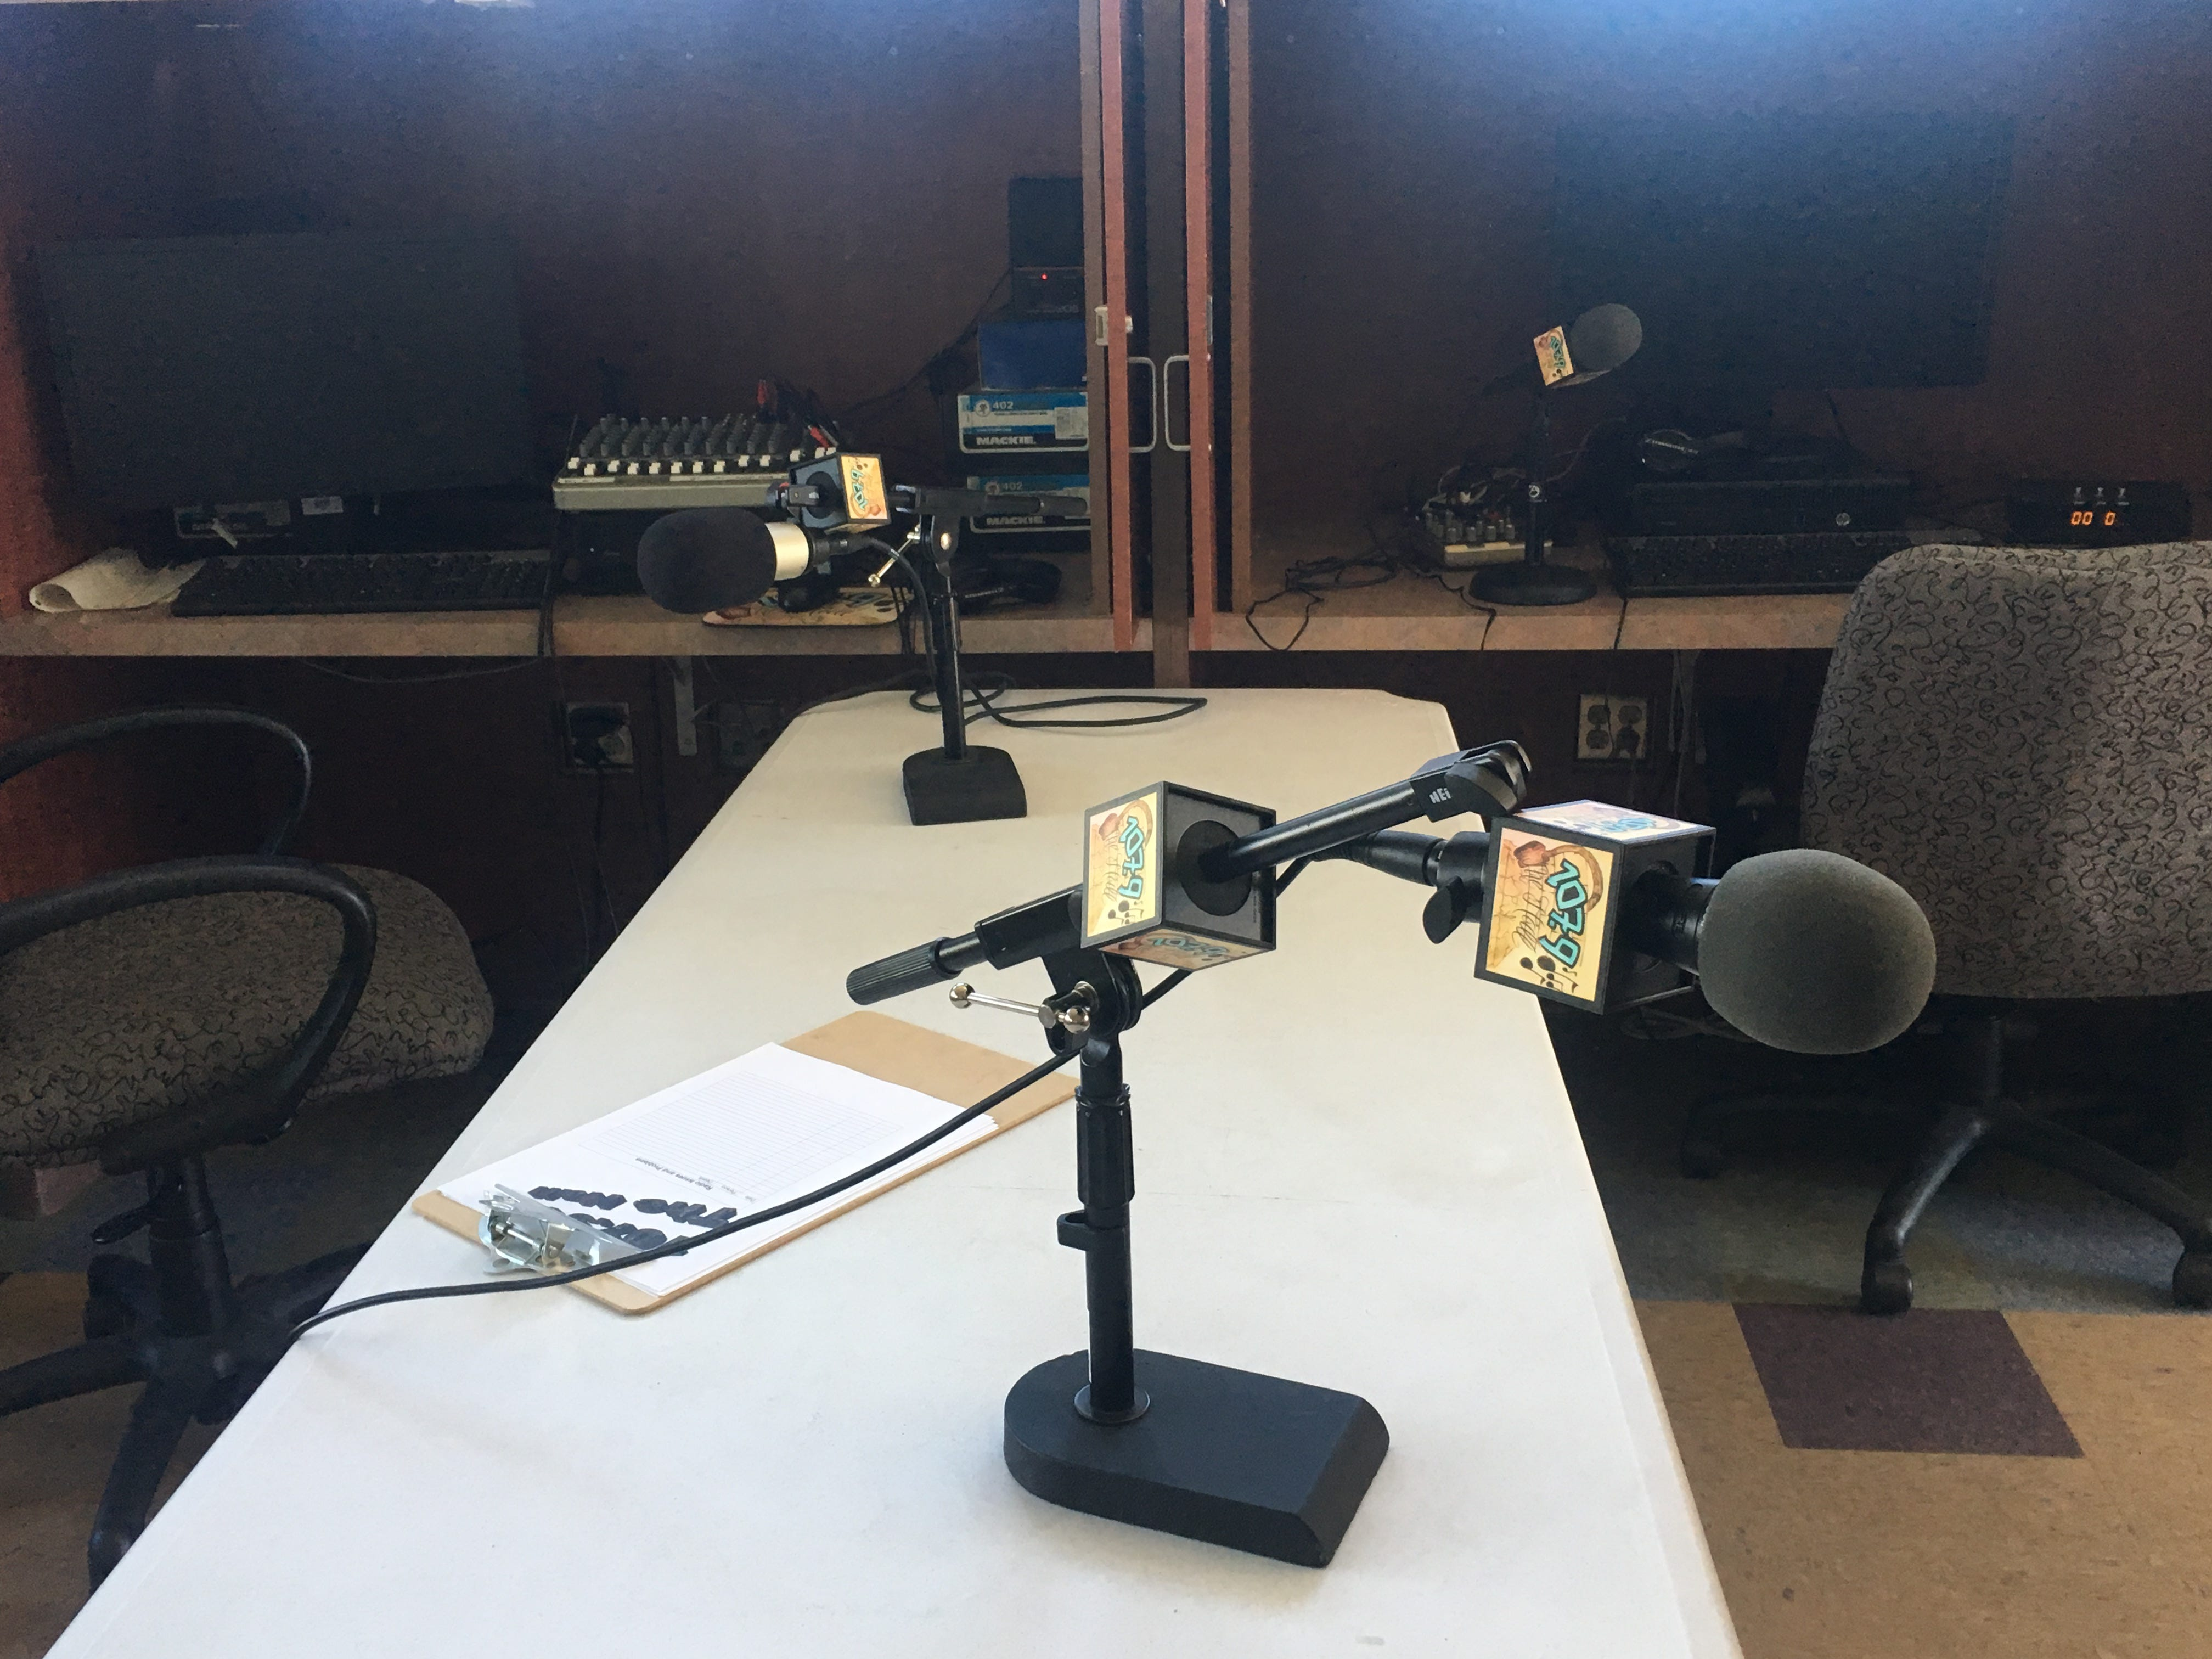 A short-range radio station is one of several skills trade programs for youths at Ventura County Juvenile Hall facility in El Rio.